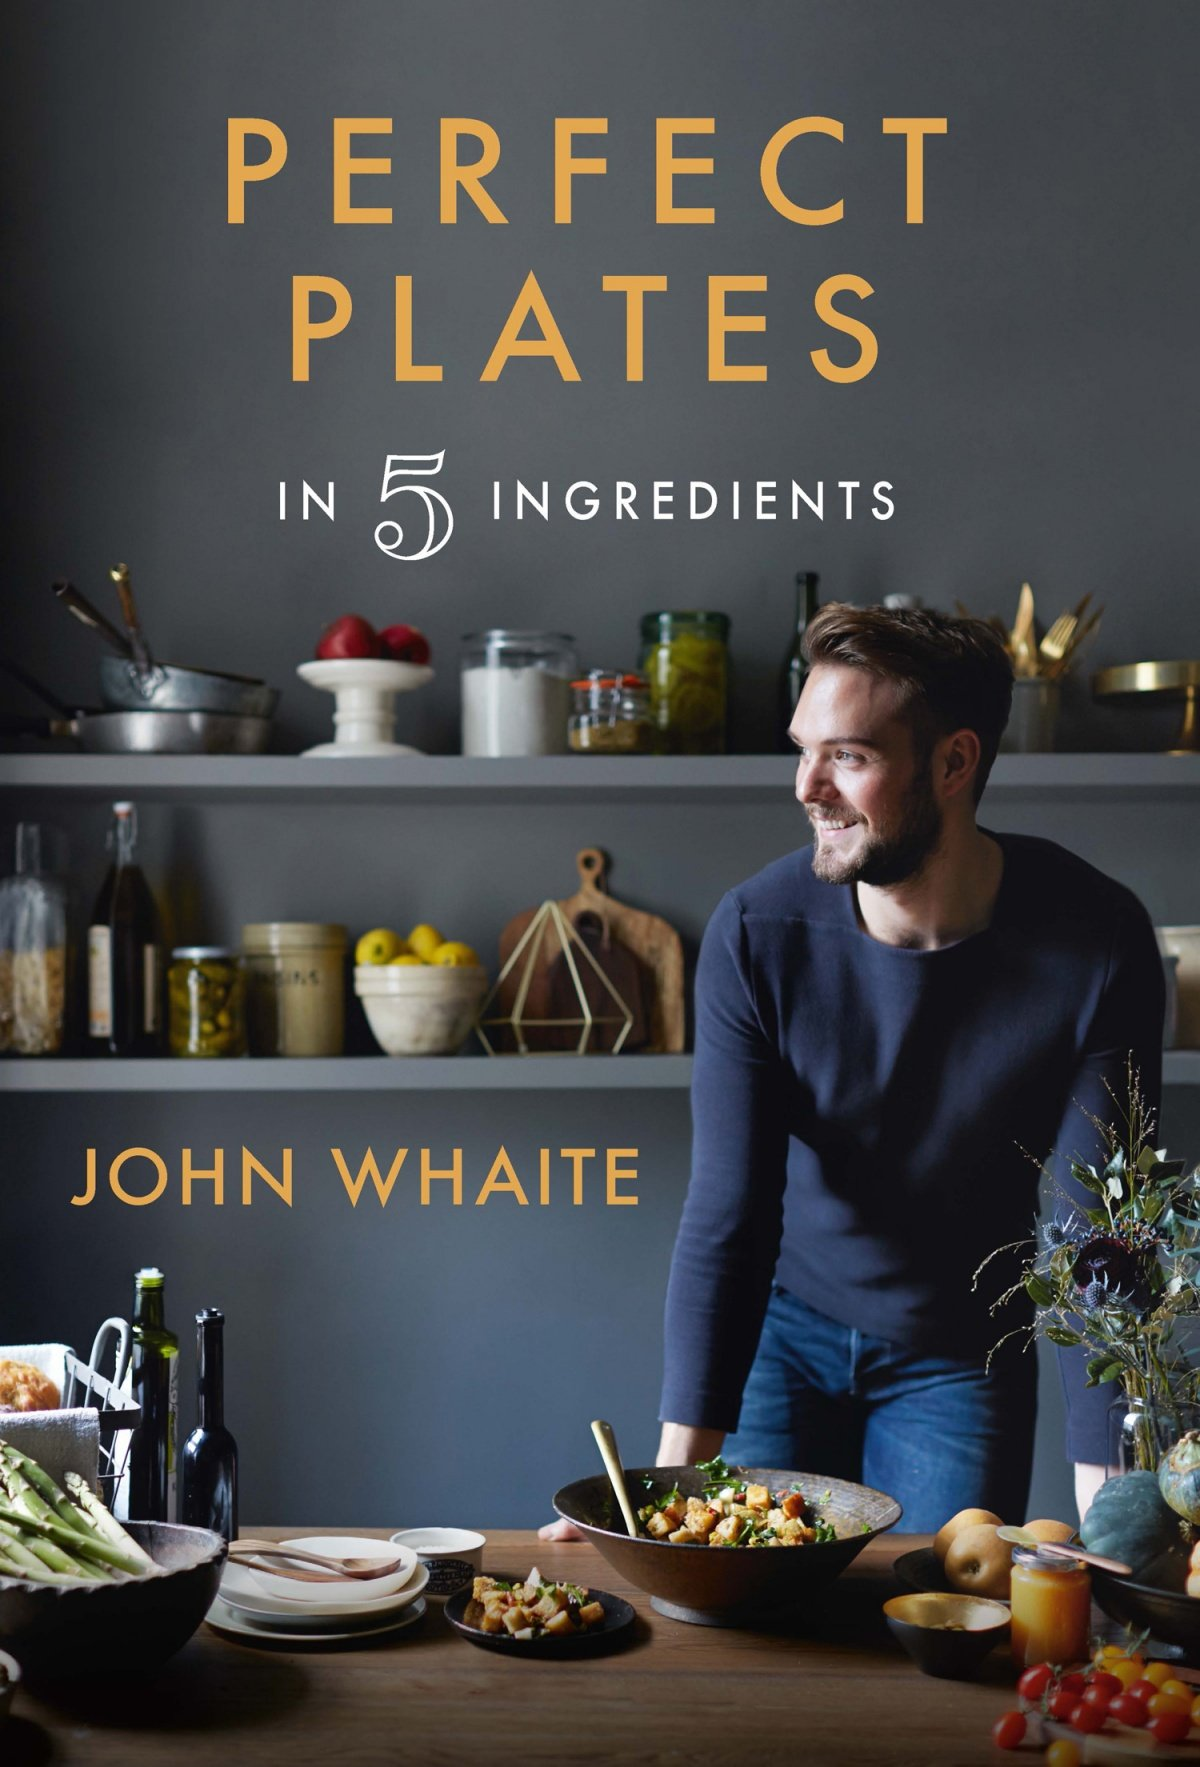 Book cover of Perfect Plates by John Whaite